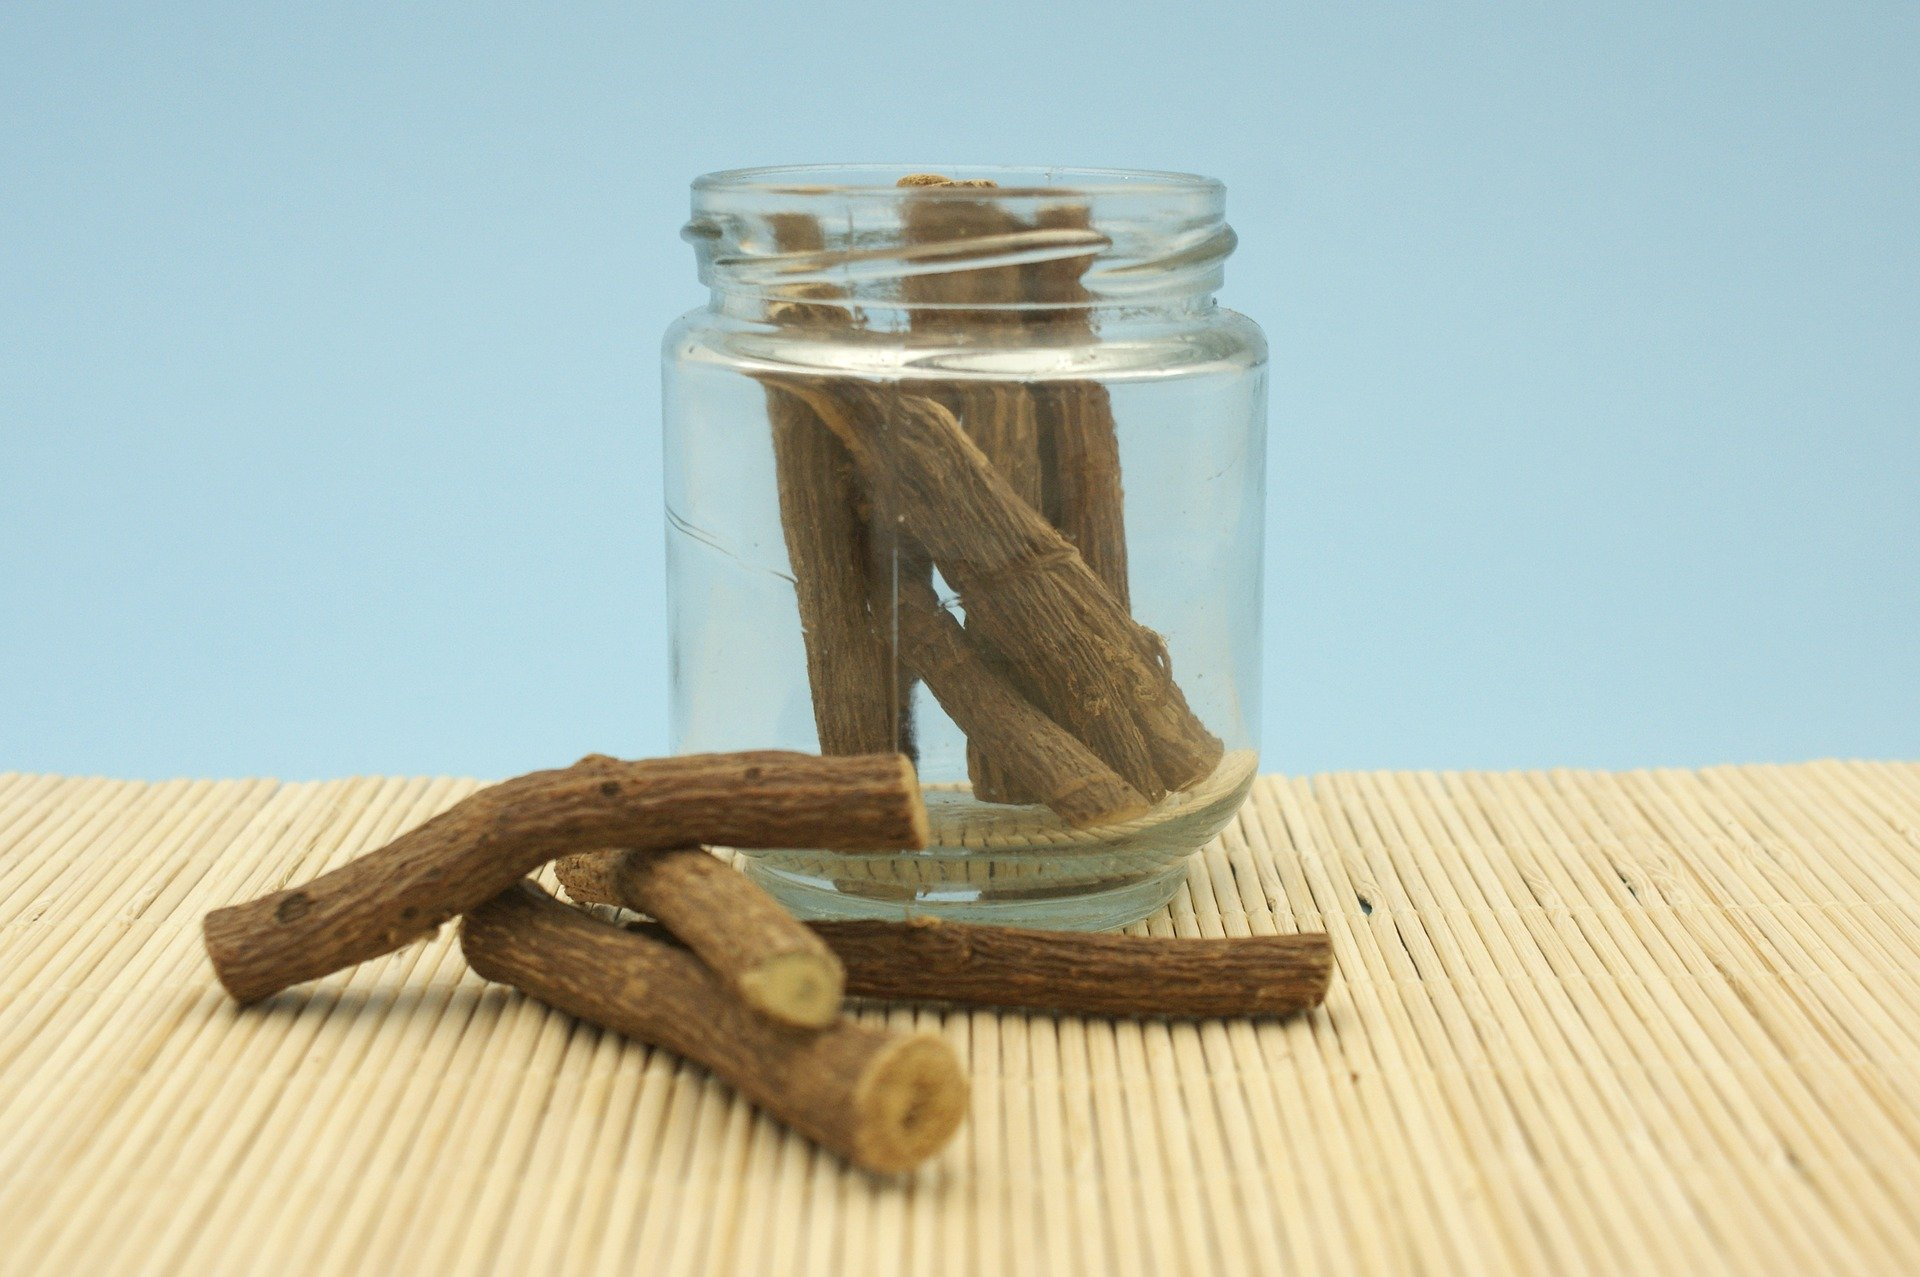 A photo of licorice root, which grows in Calabria, Italy